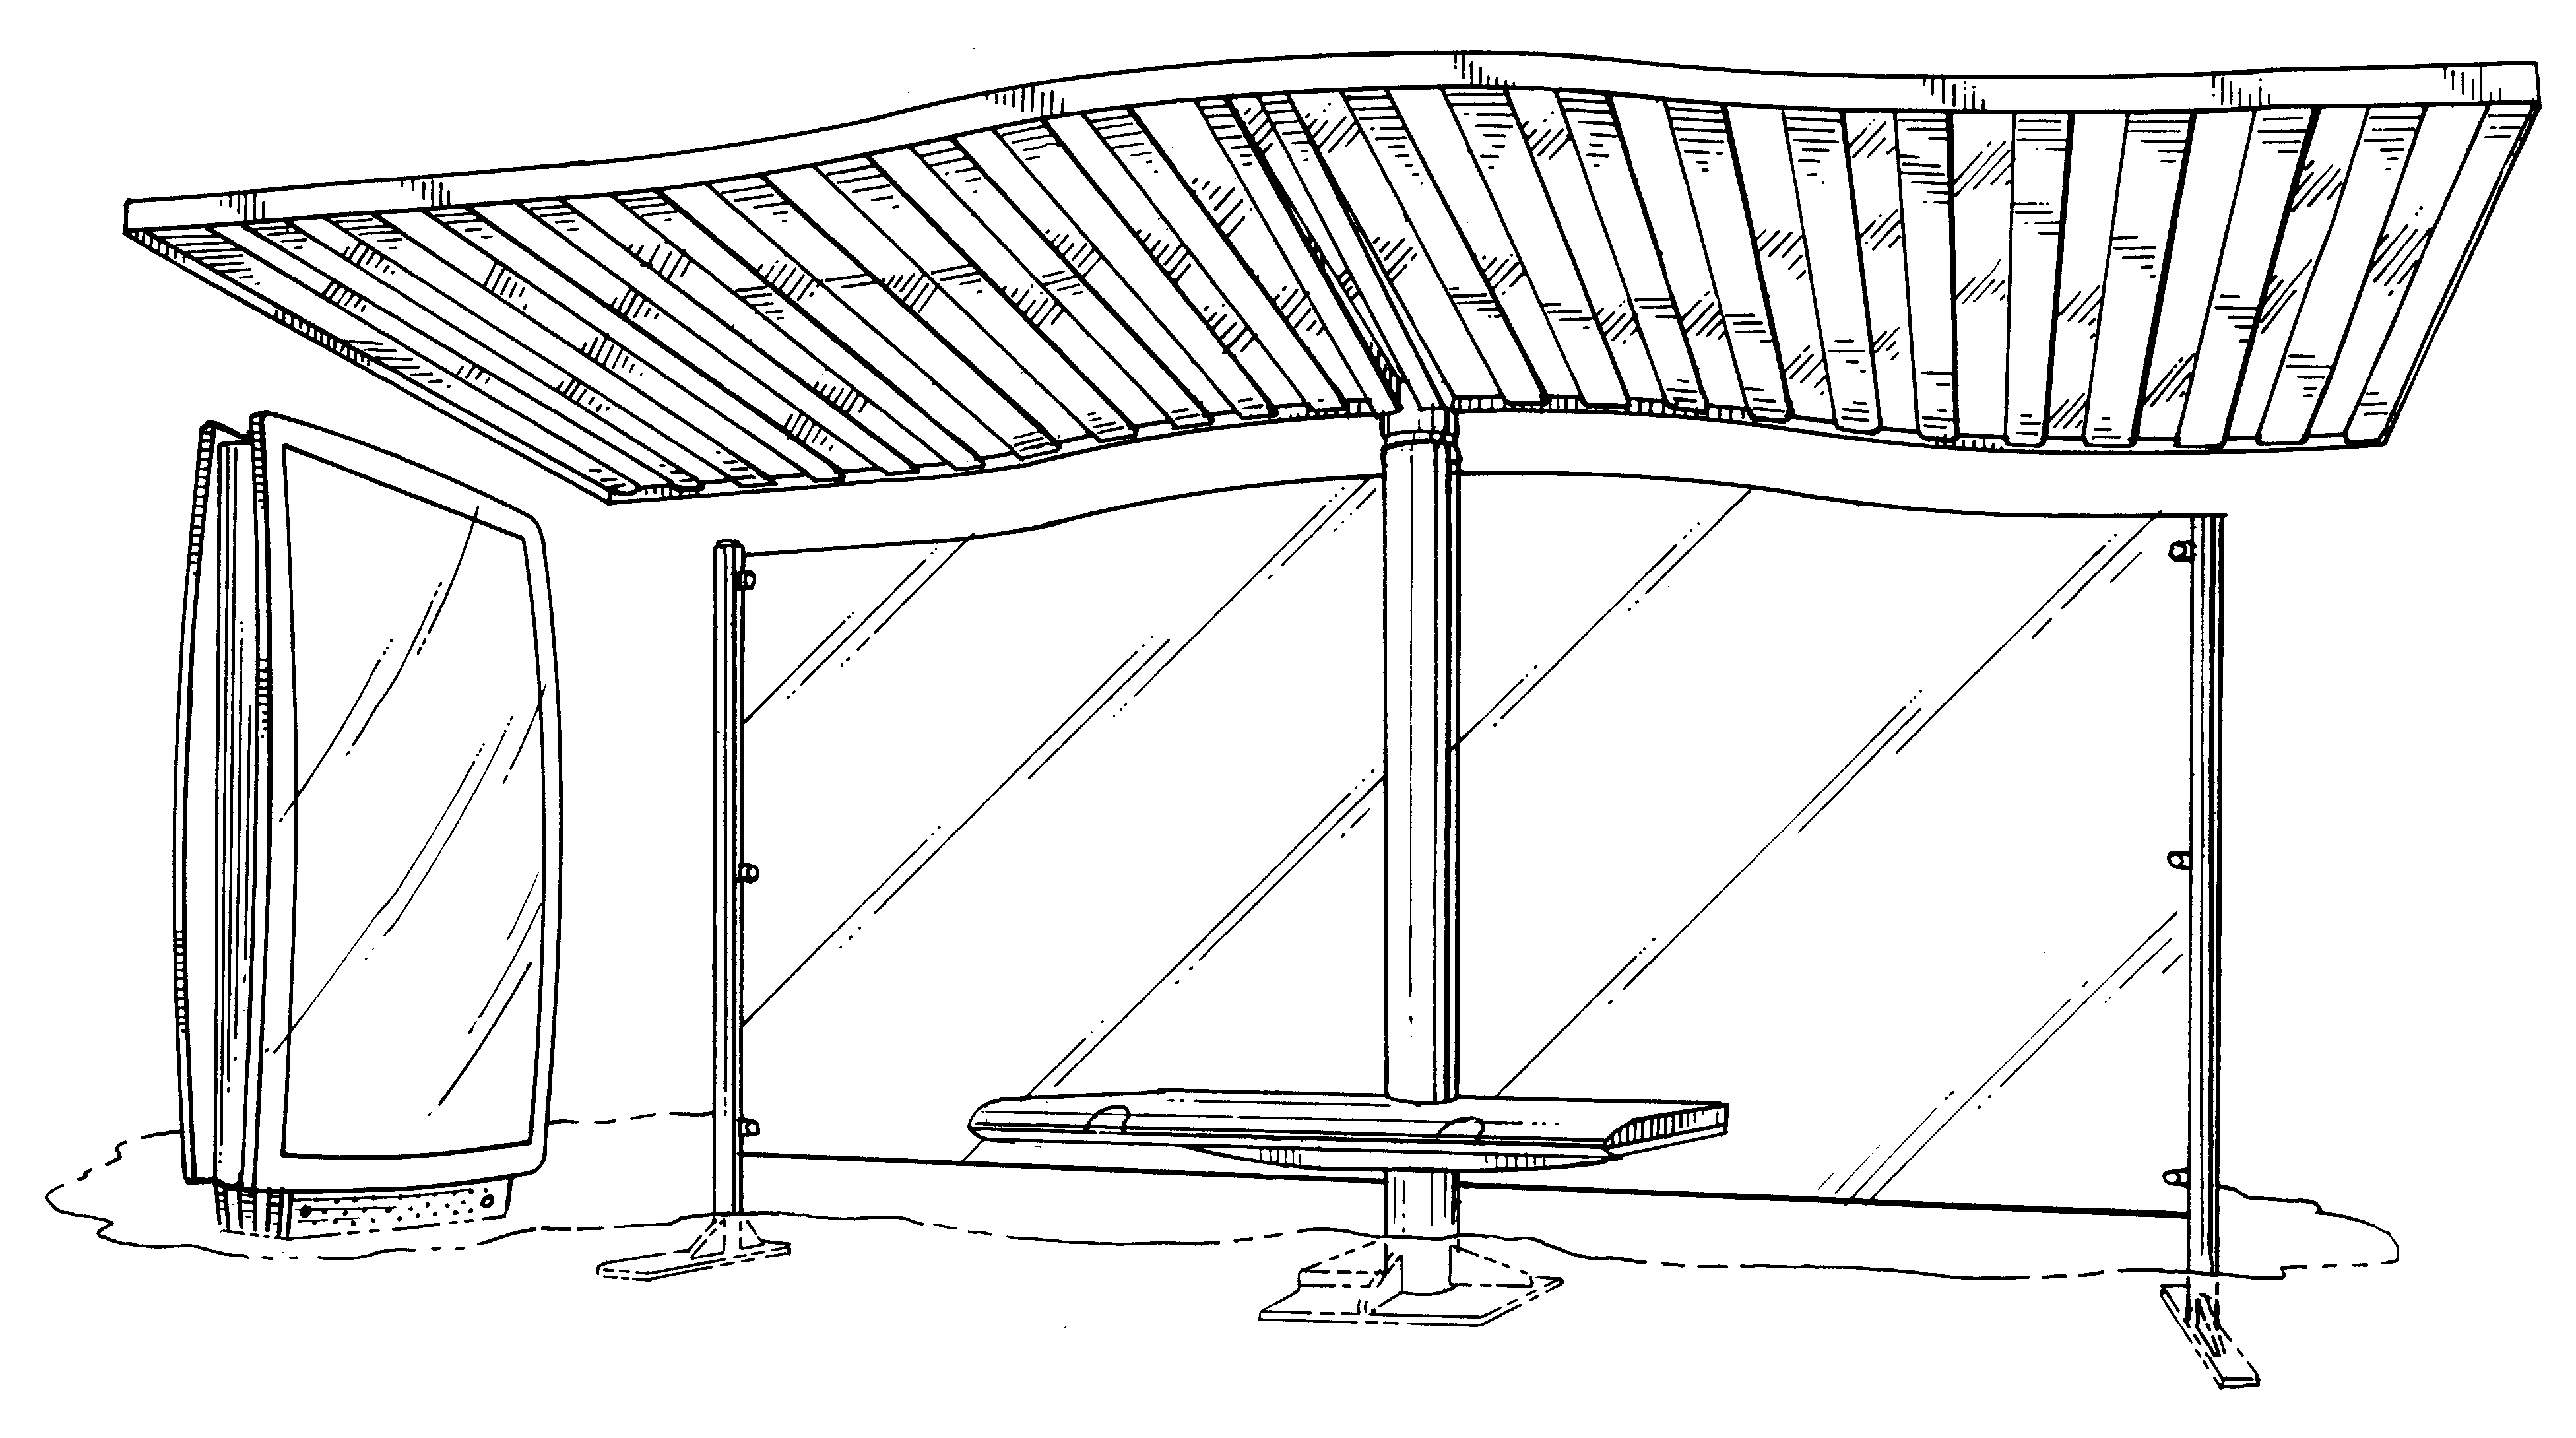 Patent Usd438635 - Bus Shelter